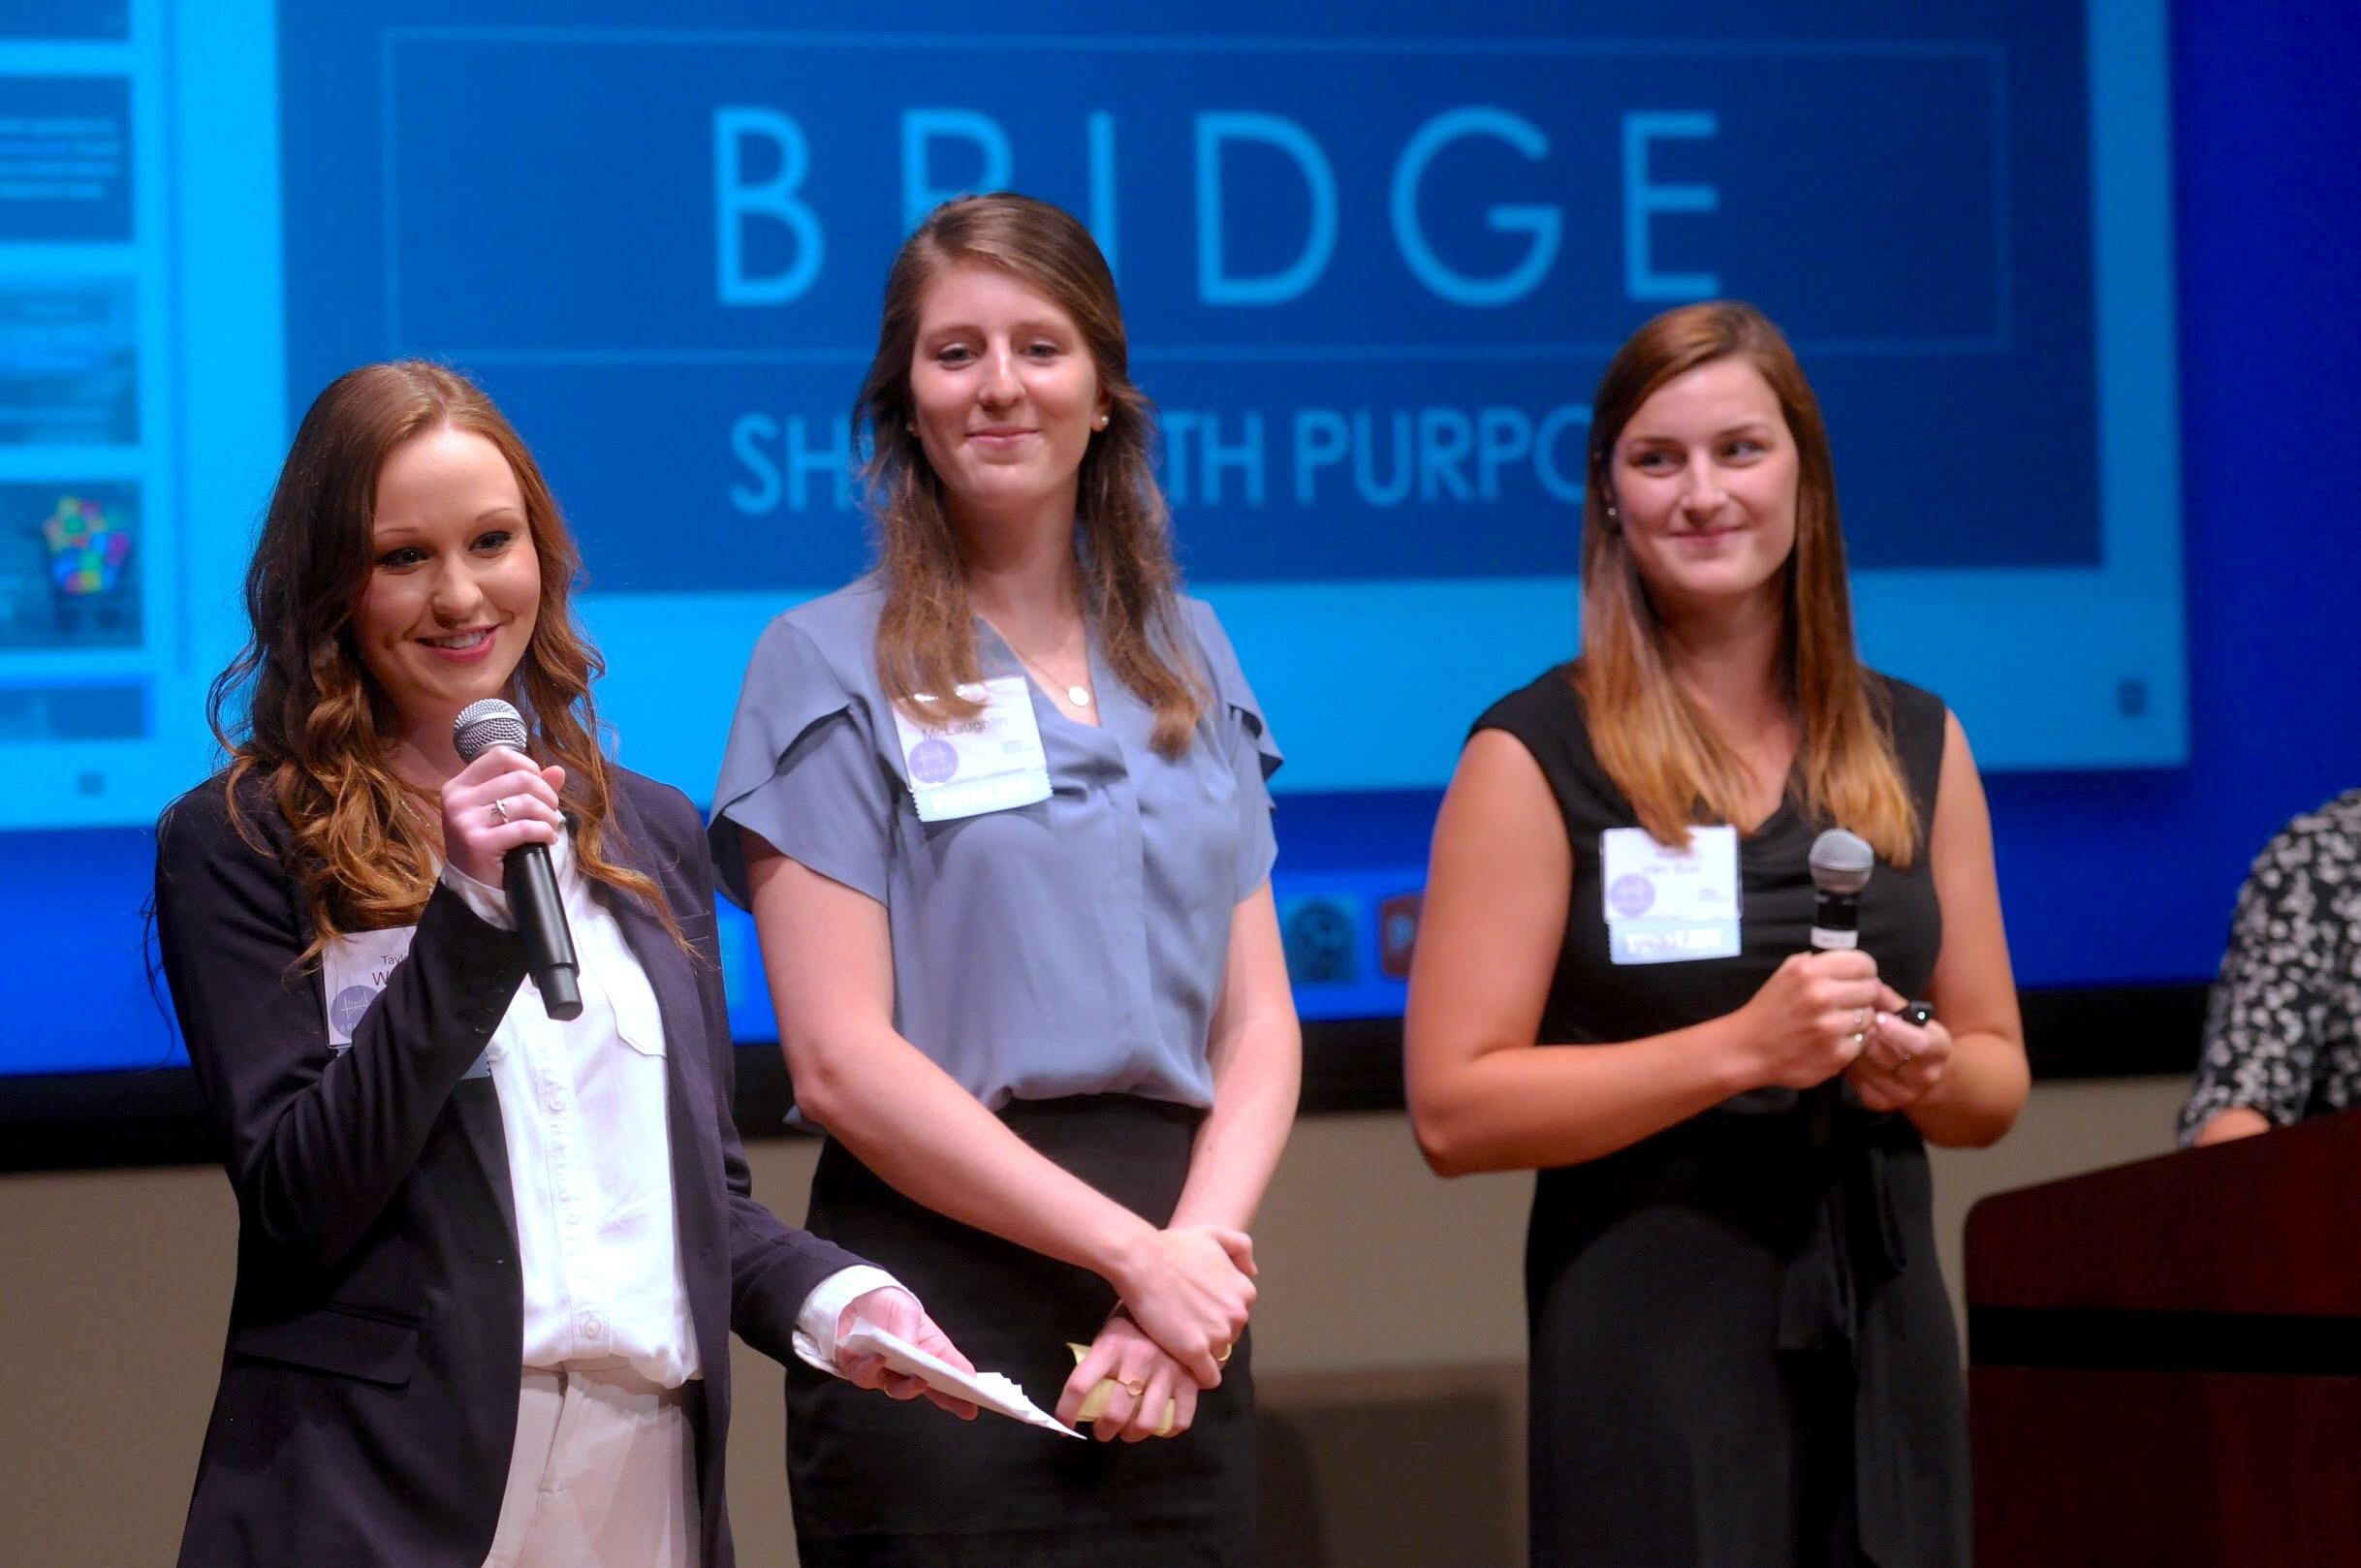 Bridge students at the Global Social Innovation Challenge